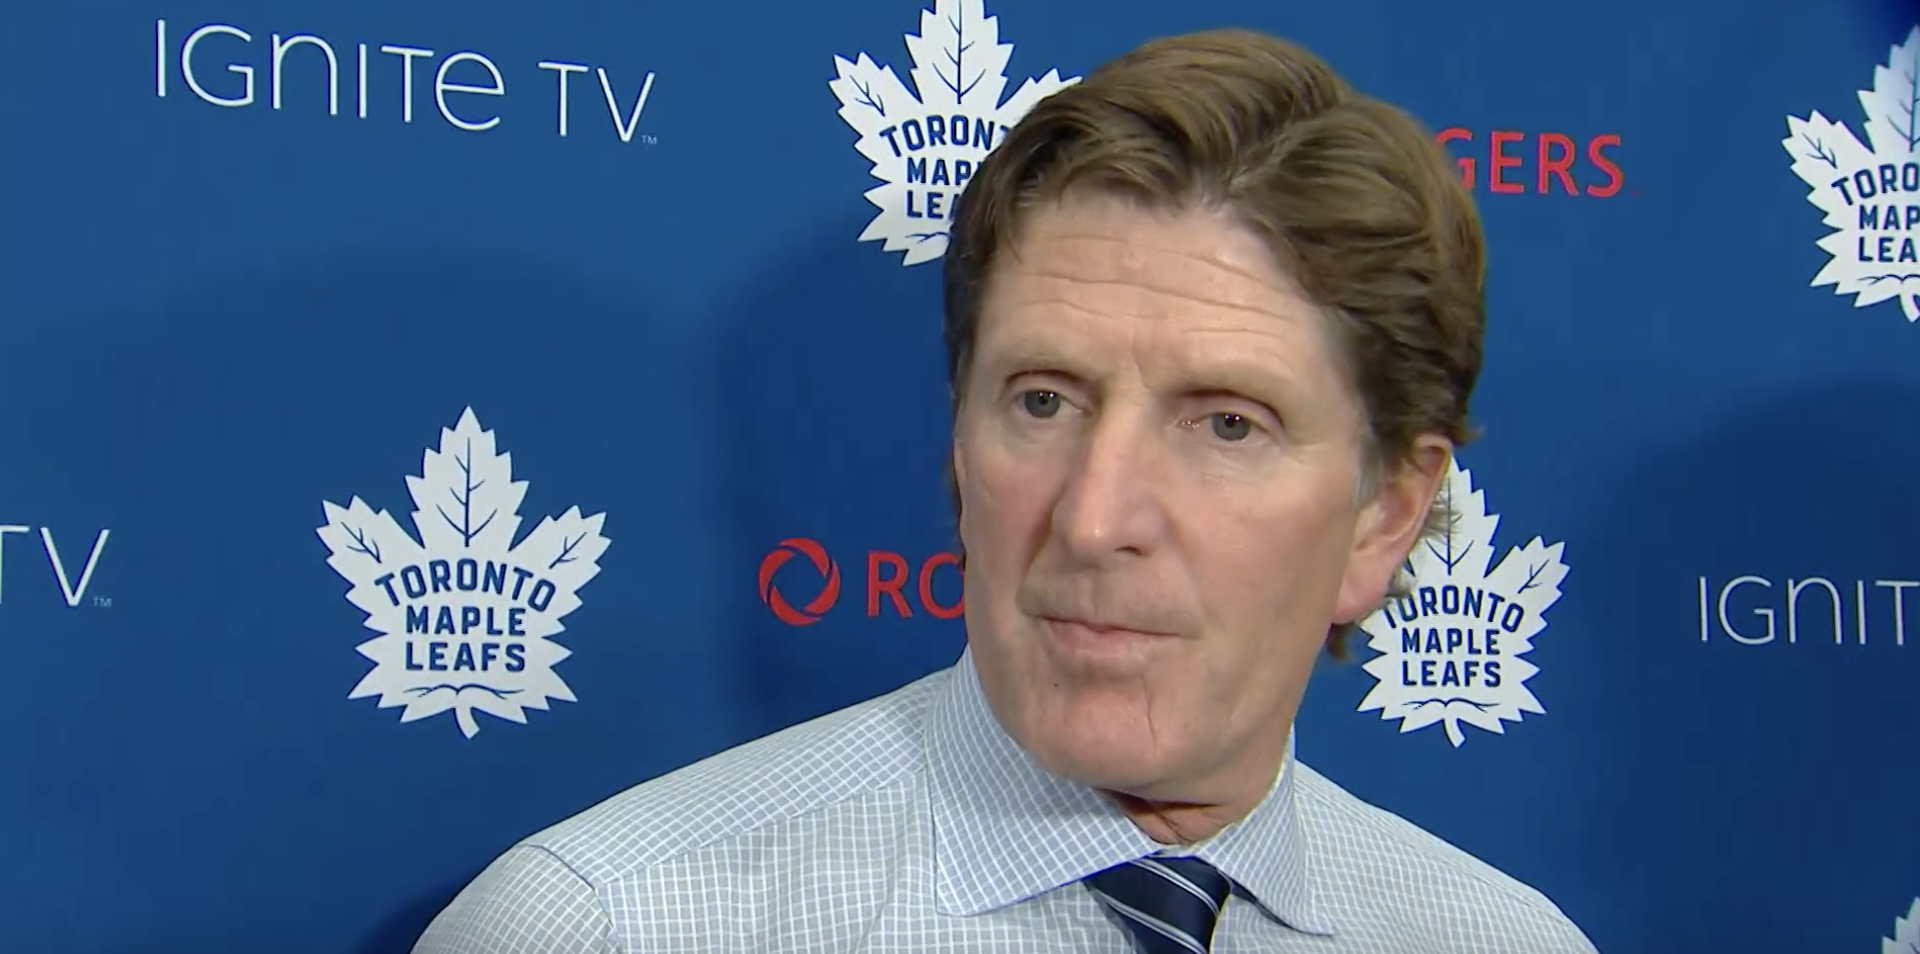 Toronto Maple Leafs fire coach Mike Babcock